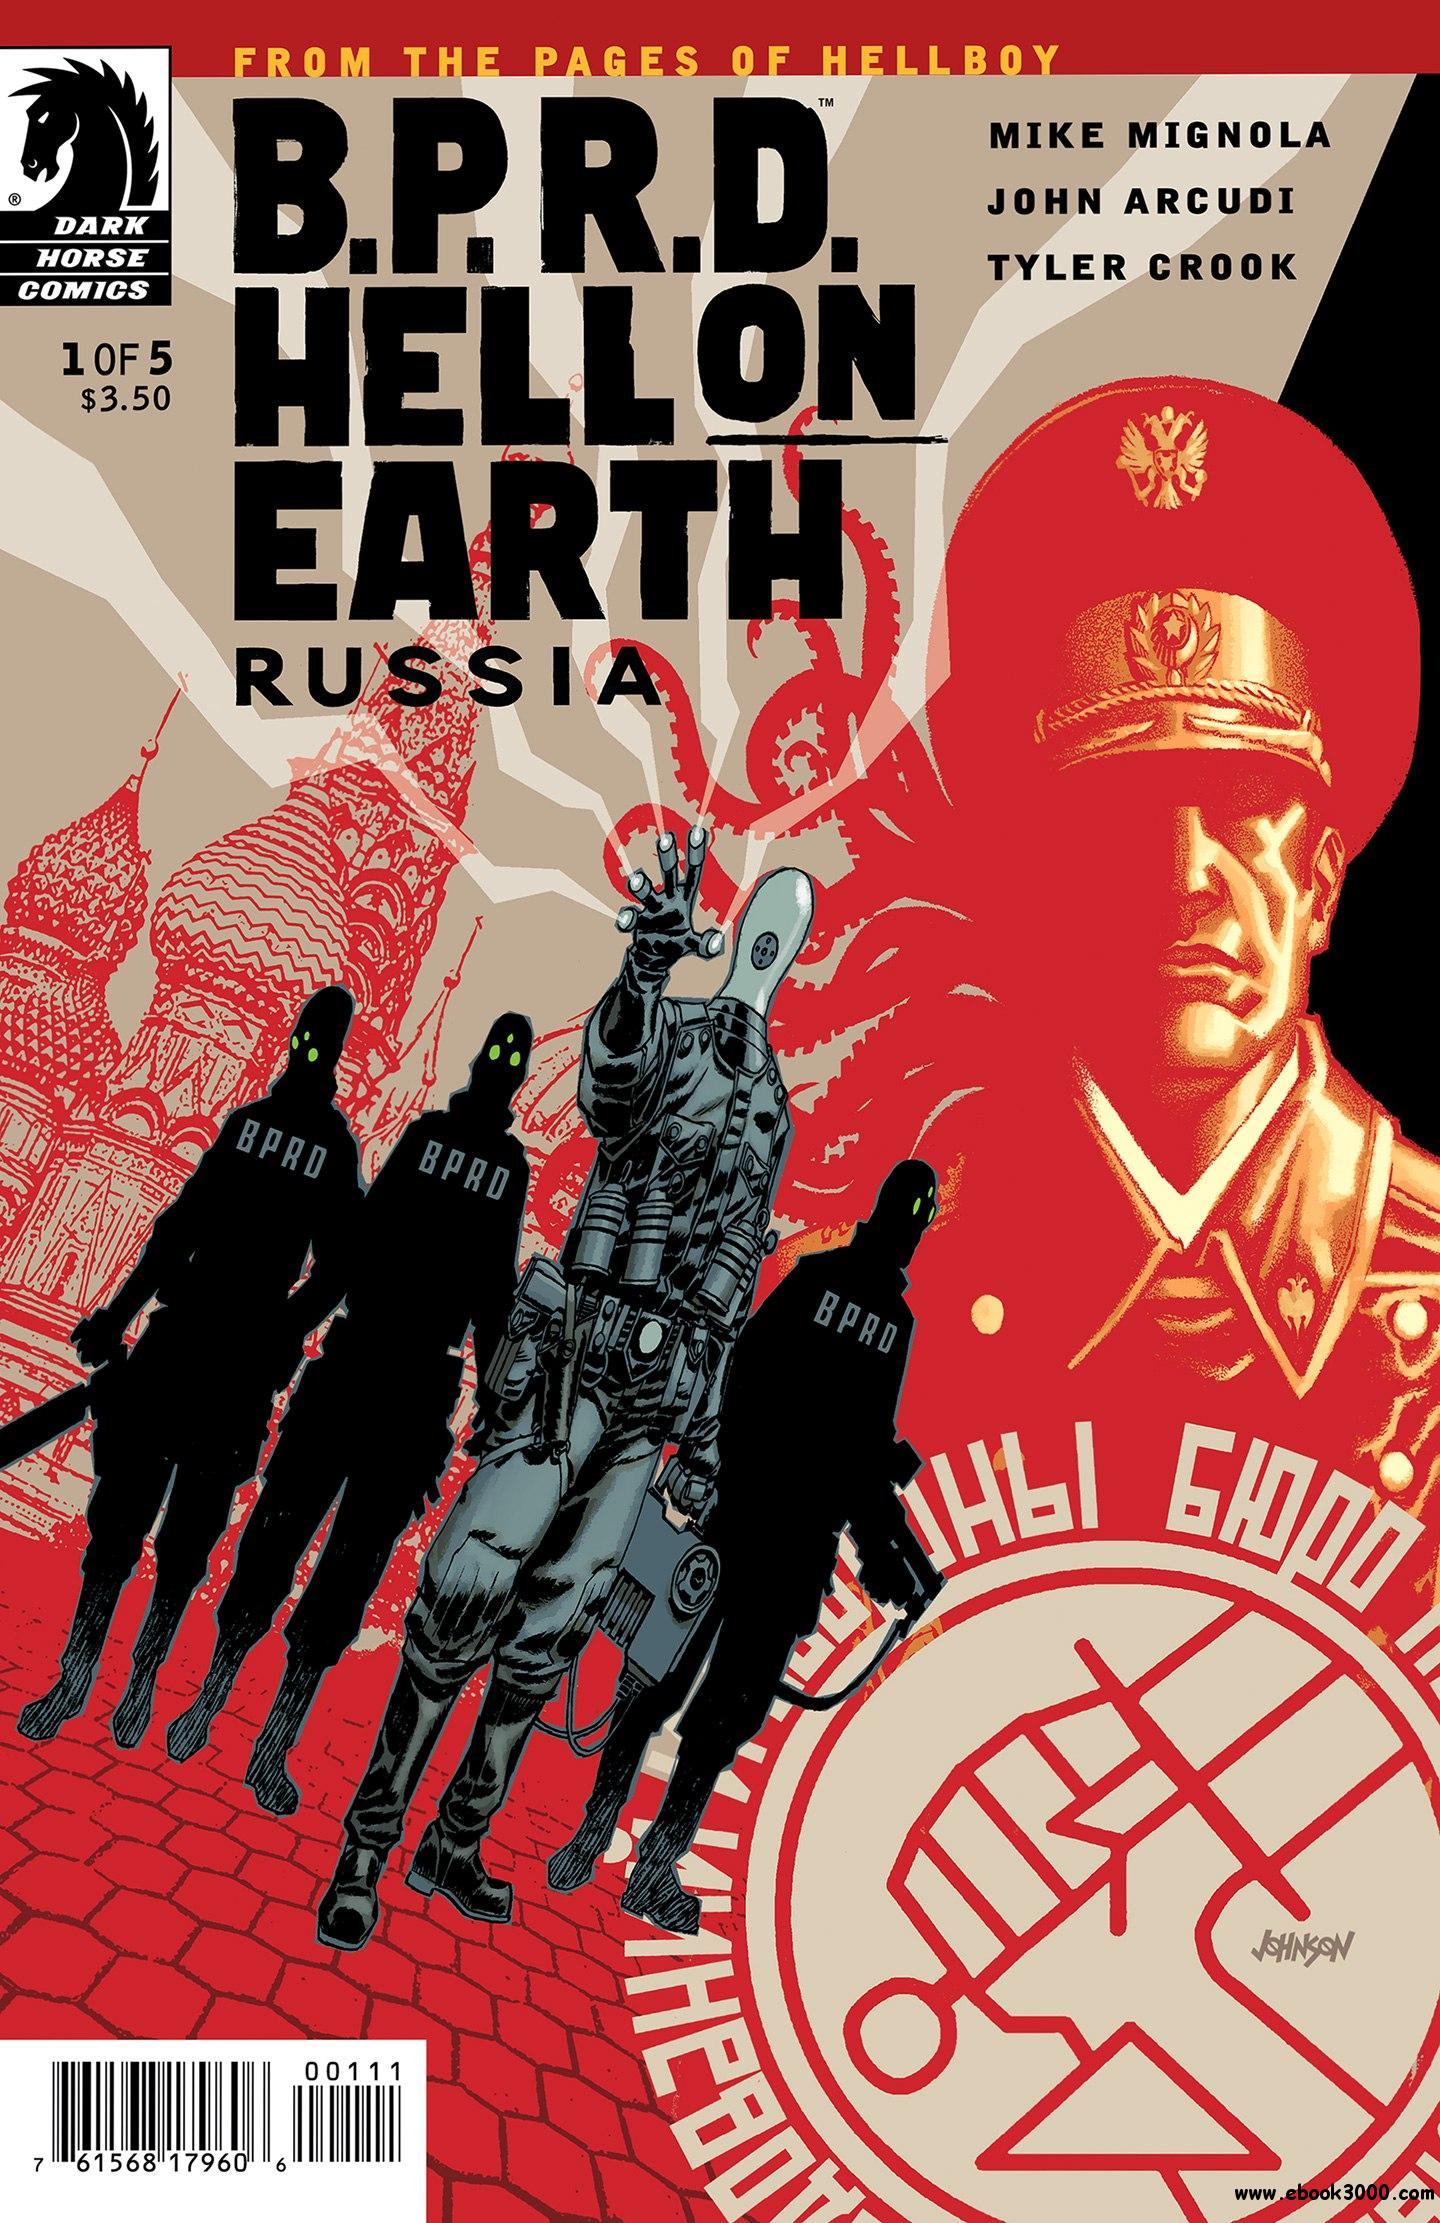 B.P.R.D. Hell on Earth - Russia #1 (of 05) (2011) free download